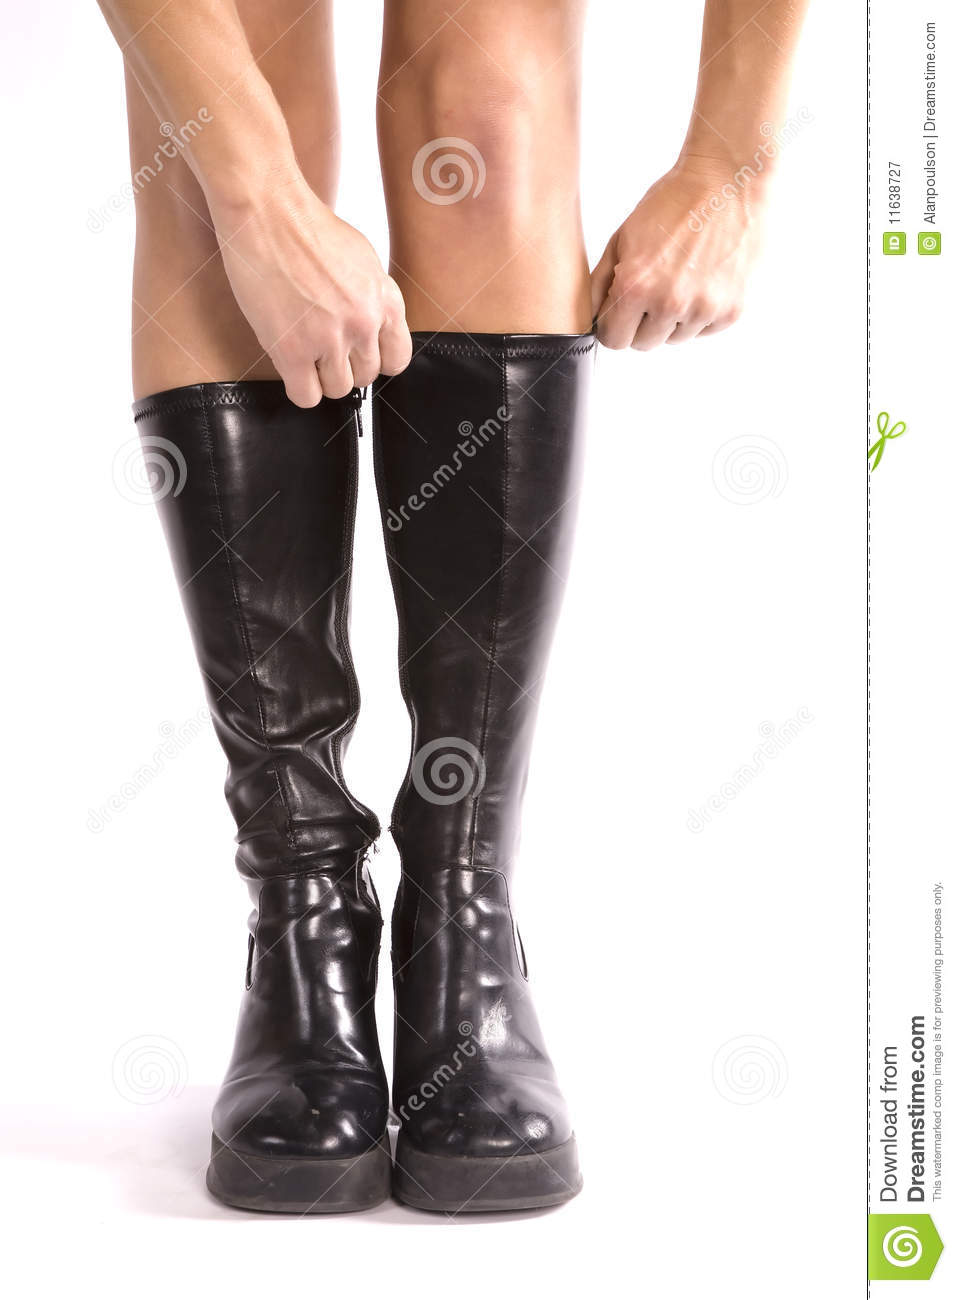 putting on black boots royalty free stock